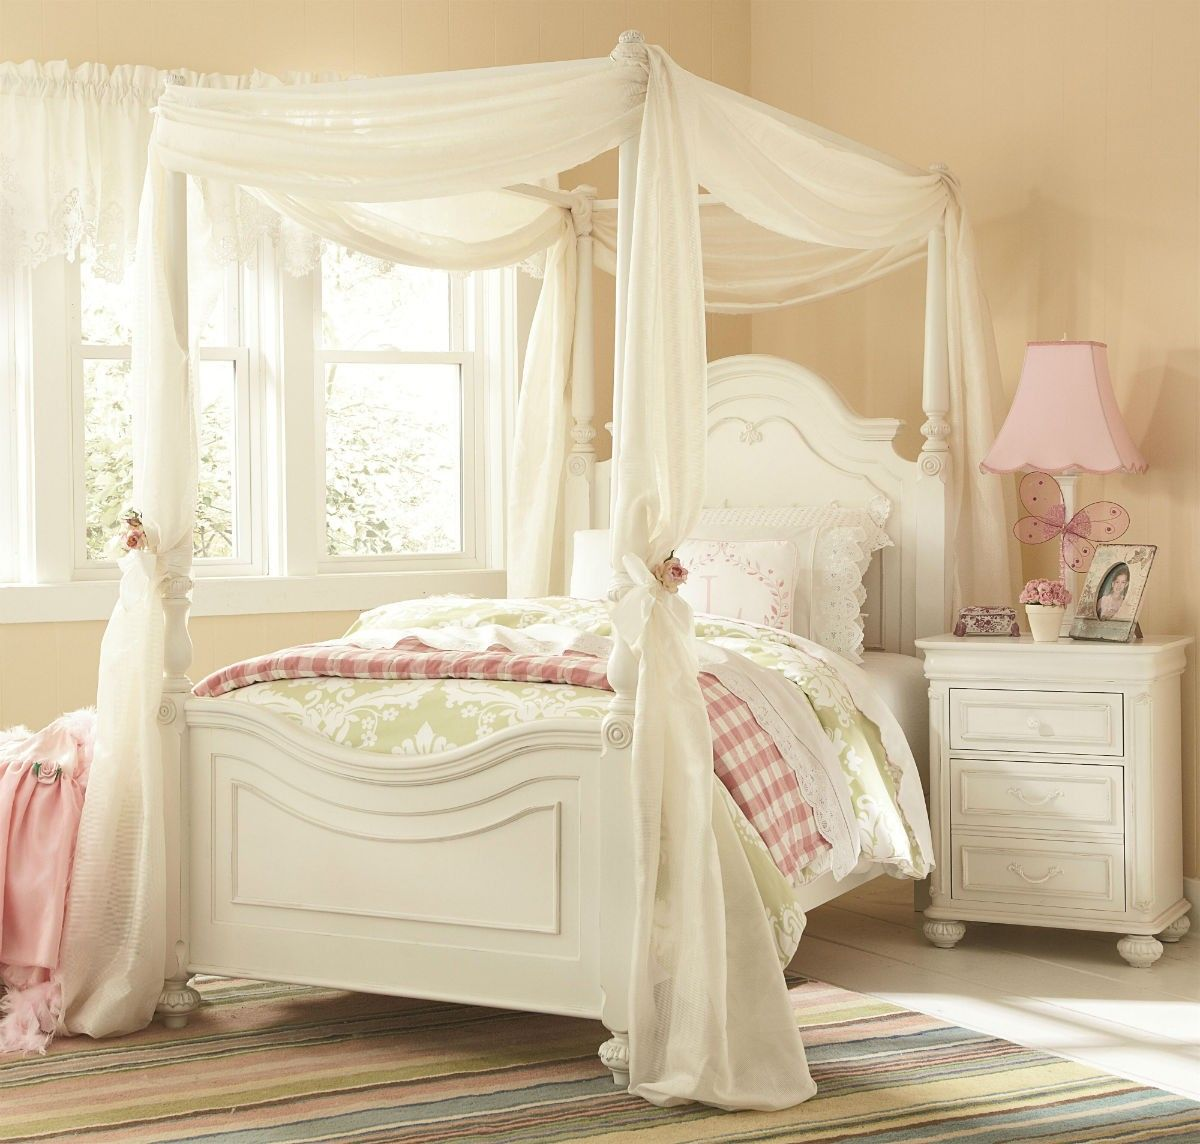 High Quality 19 Fabulous Canopy Bed Designs For Your Little Princess